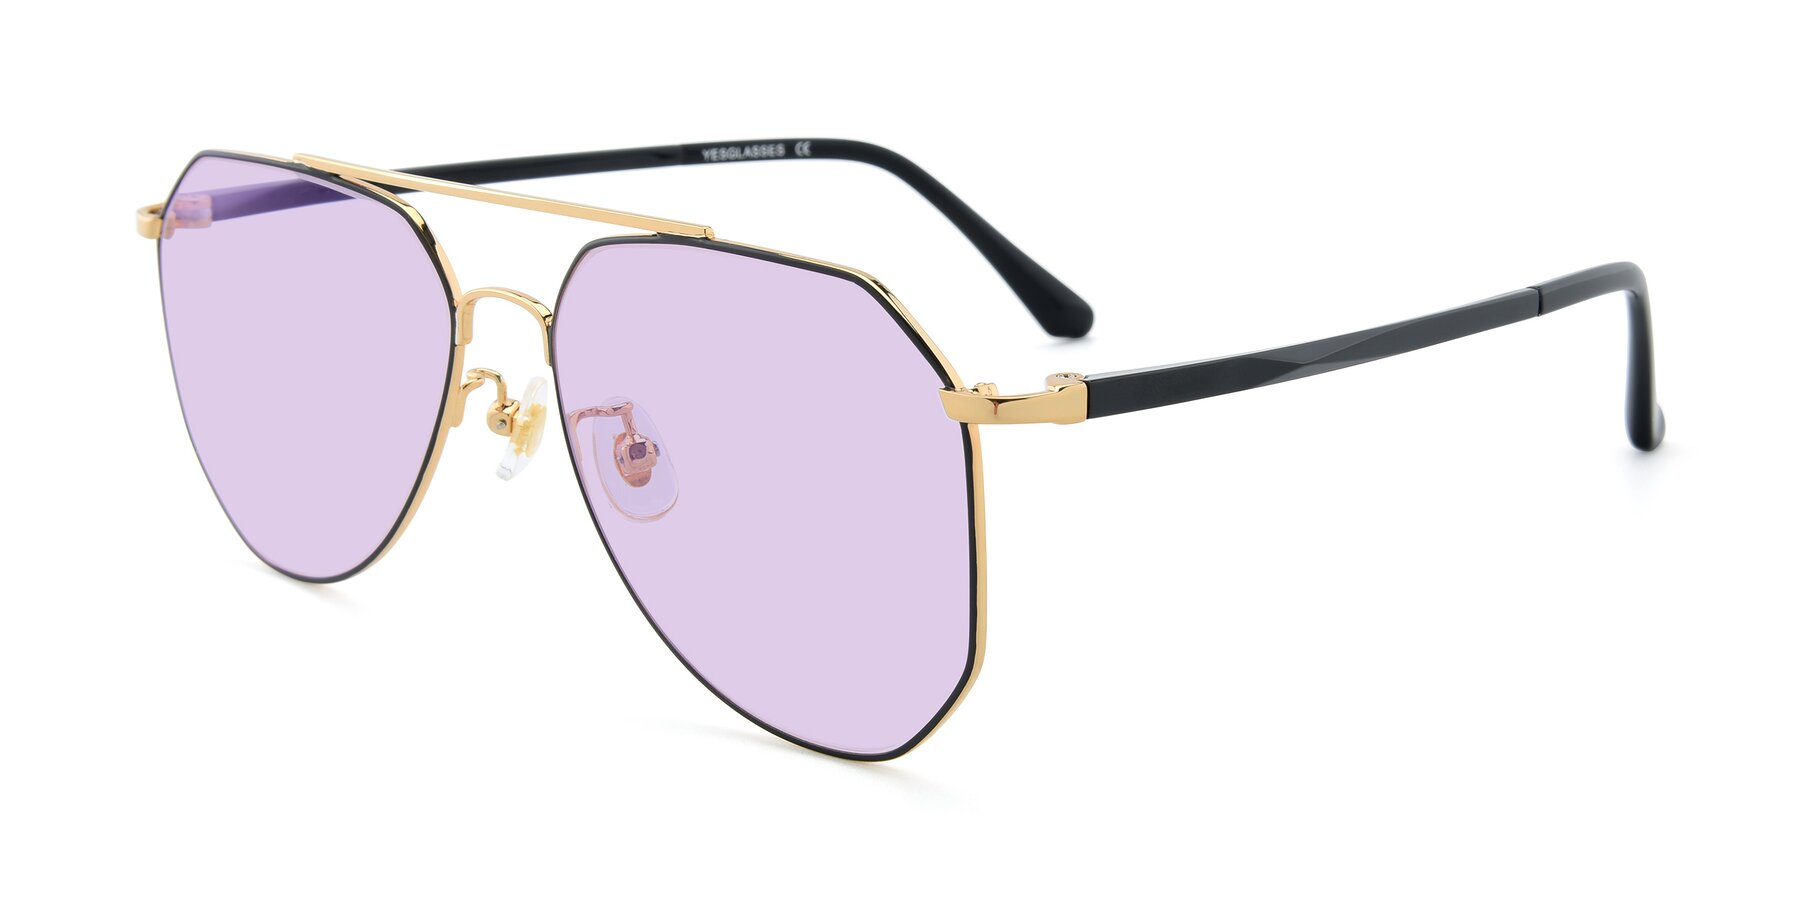 Angle of XC-8040 in Black/ Gold with Light Purple Tinted Lenses